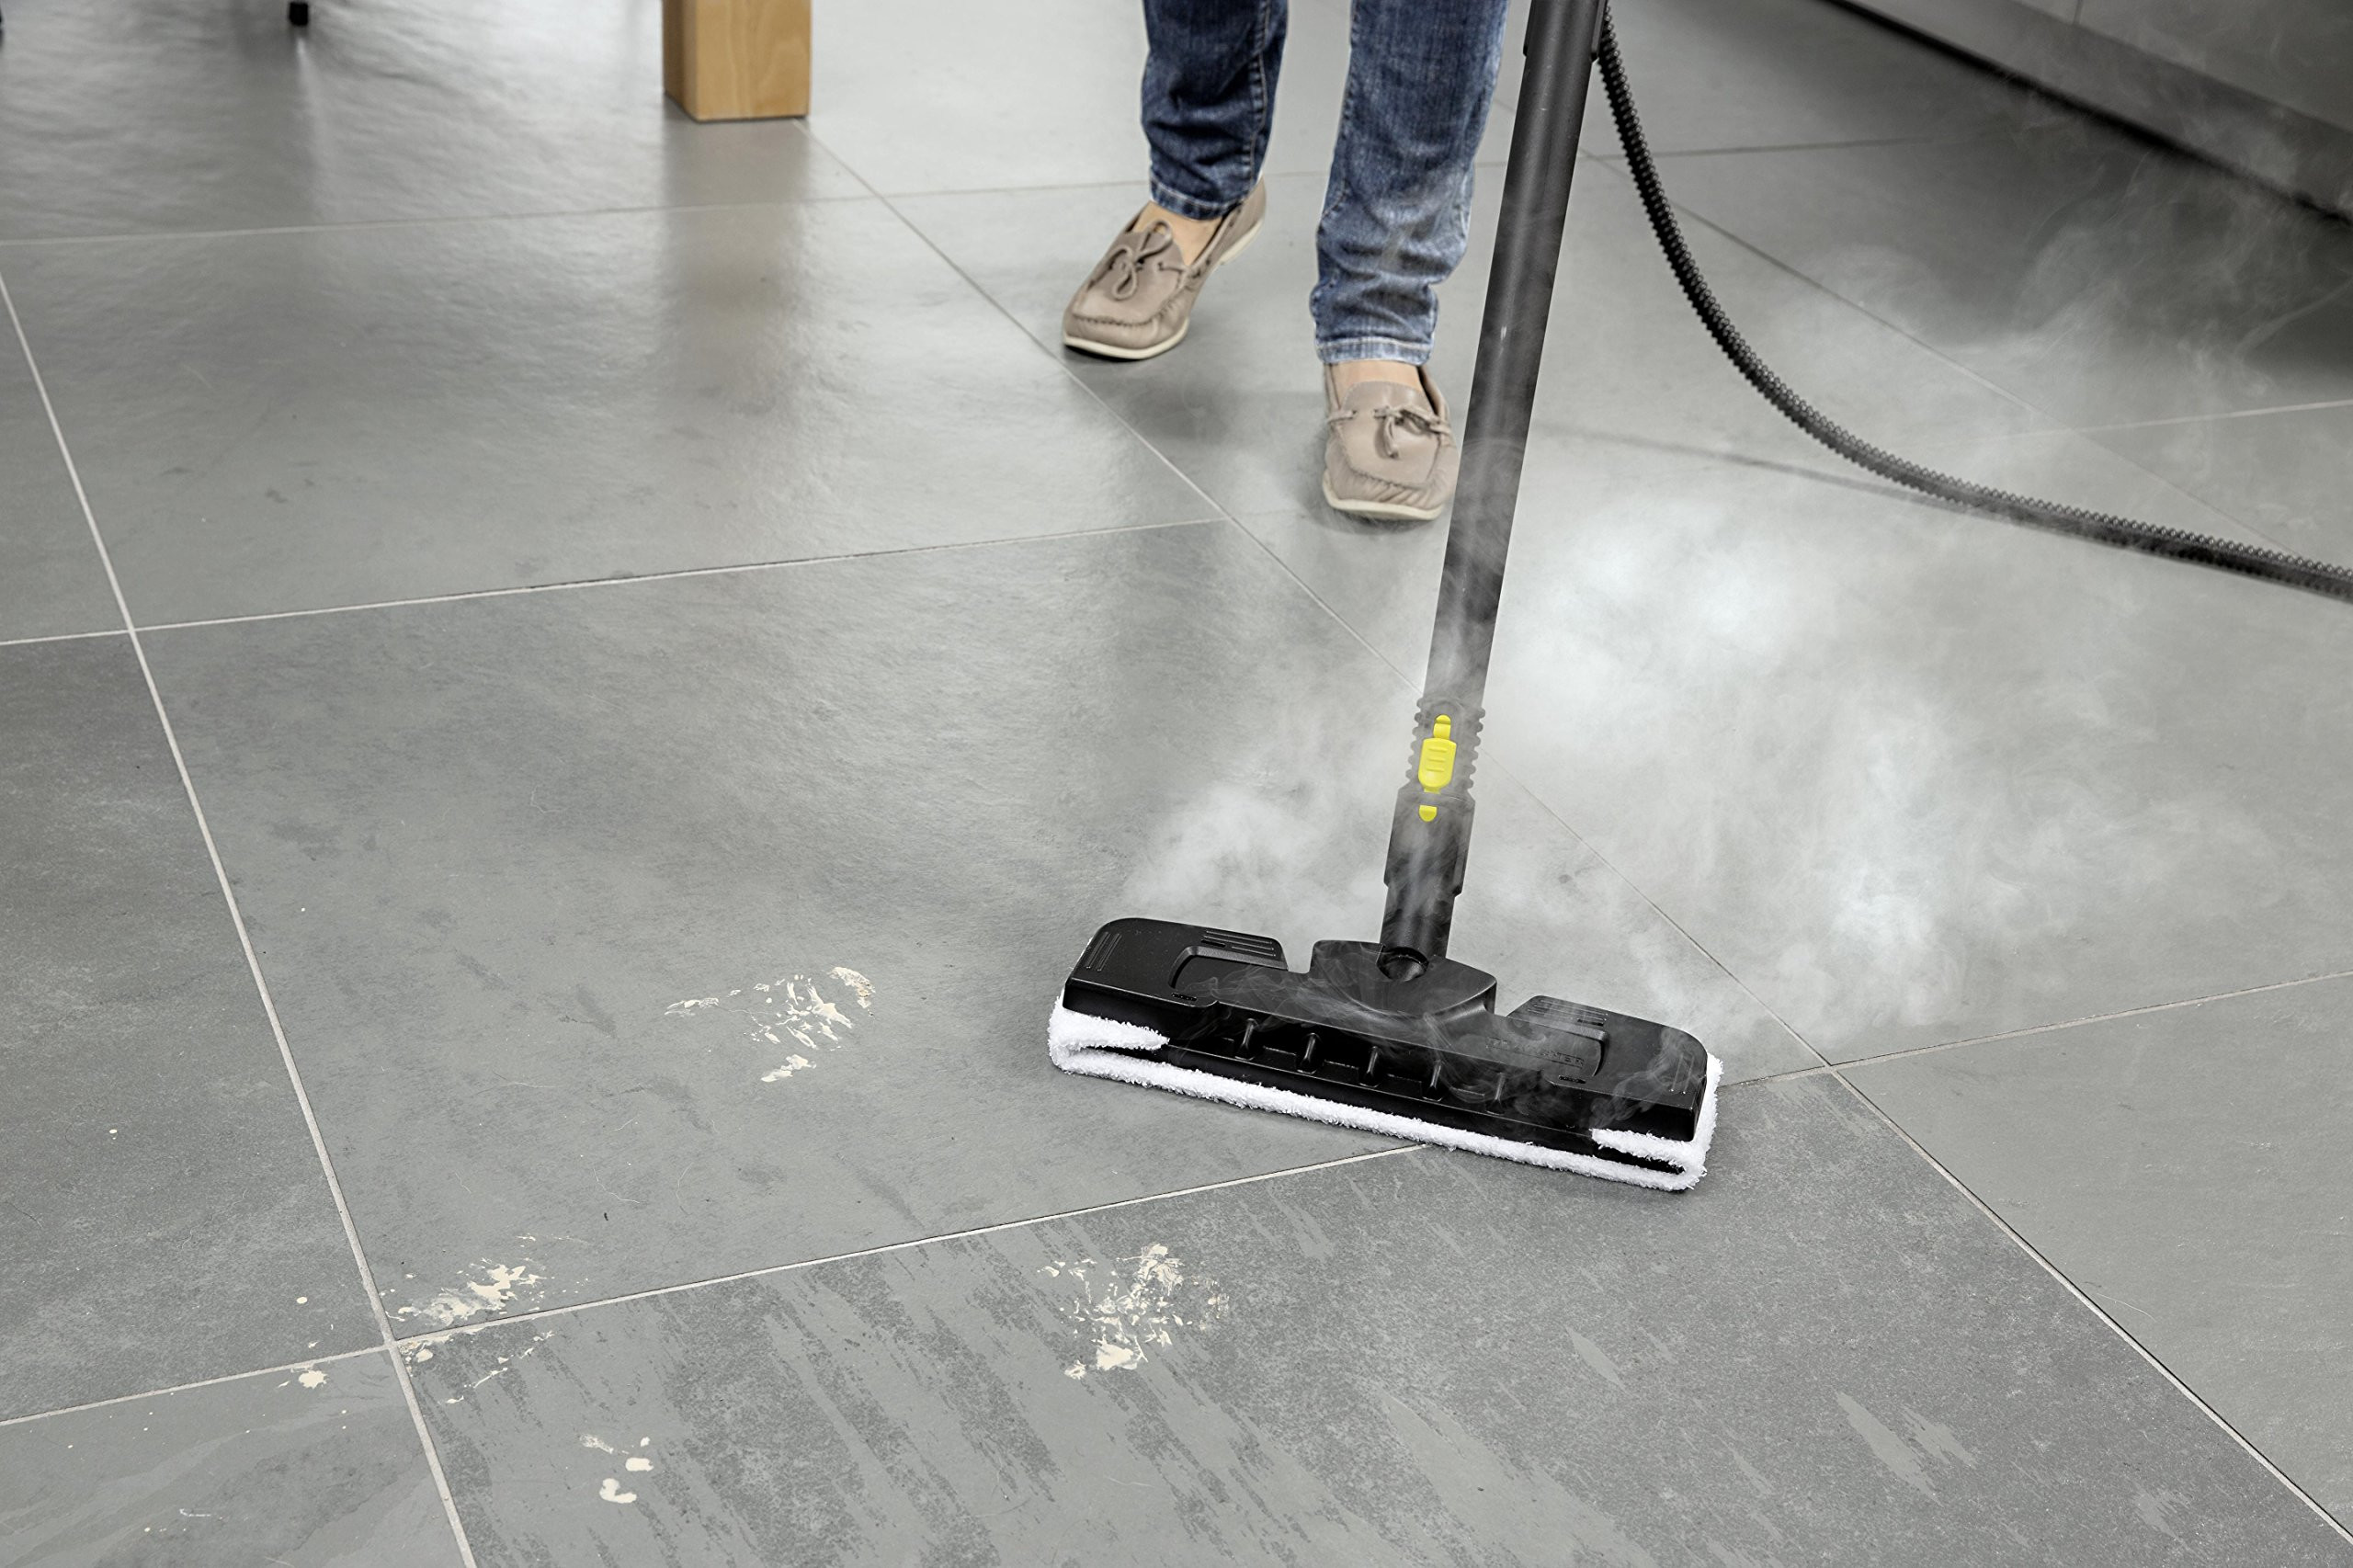 hardwood floor vacuum and steam cleaner of vacuum and floor care shop amazon uk with regard to steam steam cleaners